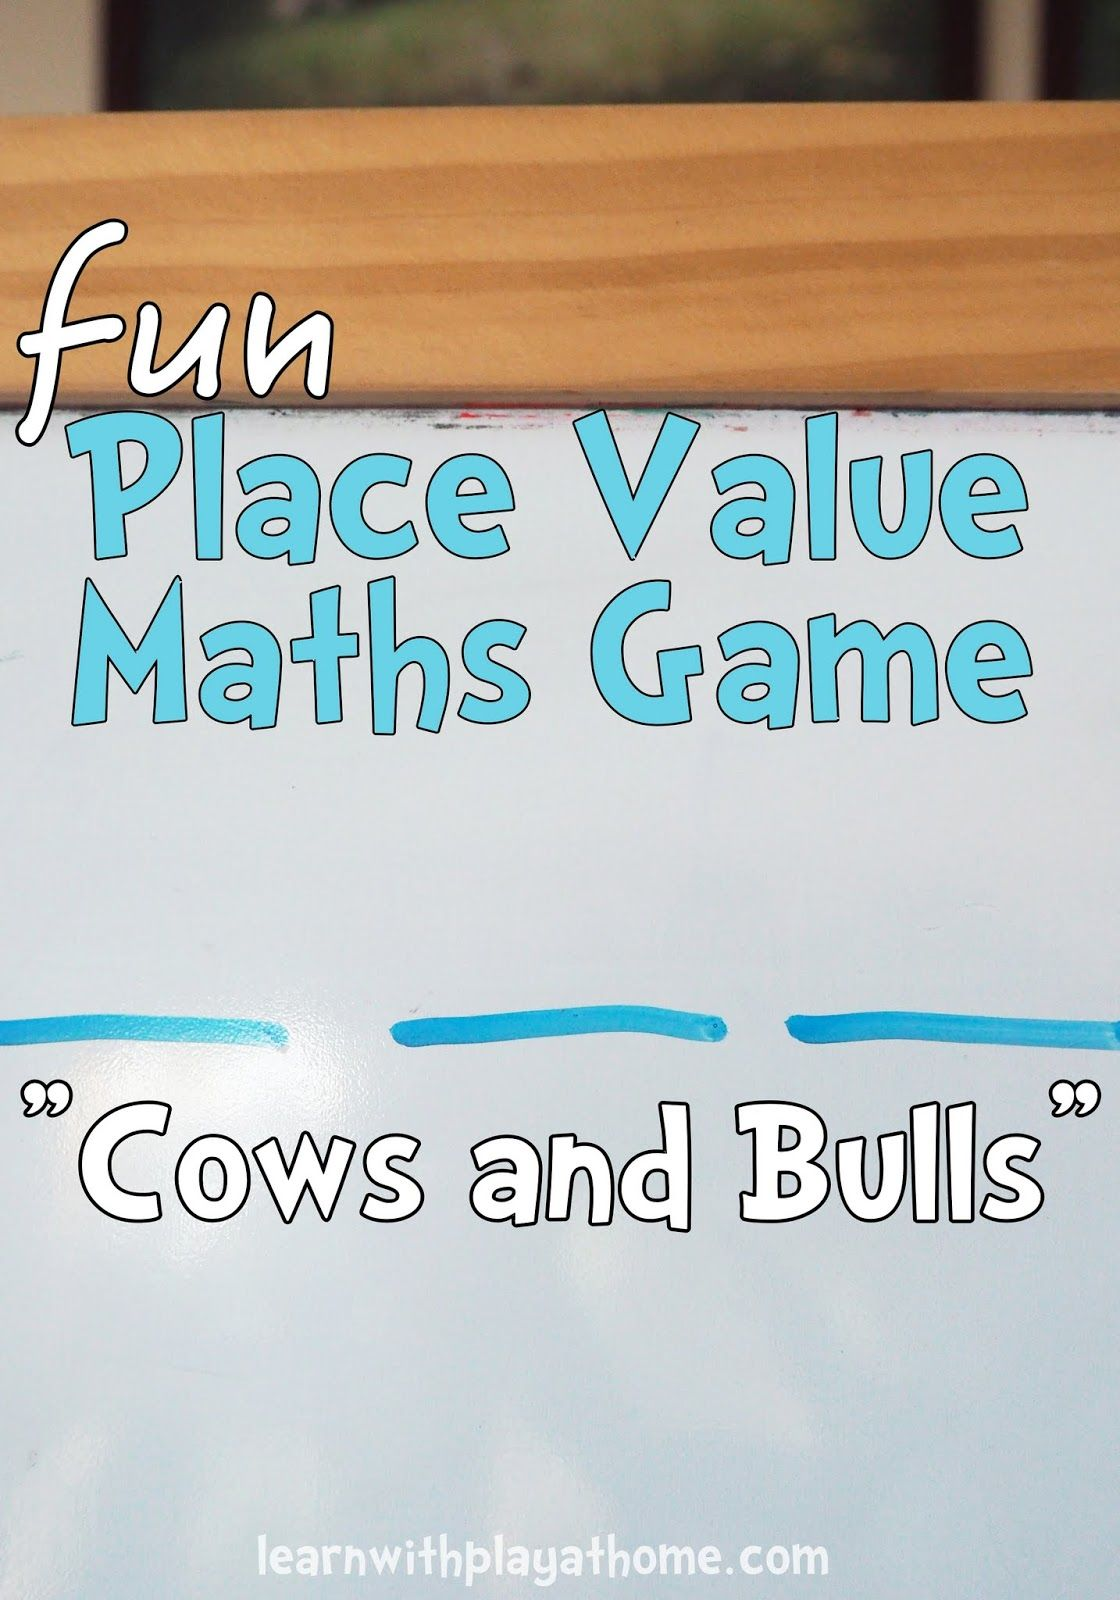 Place Value Maths Game. Cows and Bulls | New Teachers | Pinterest ...